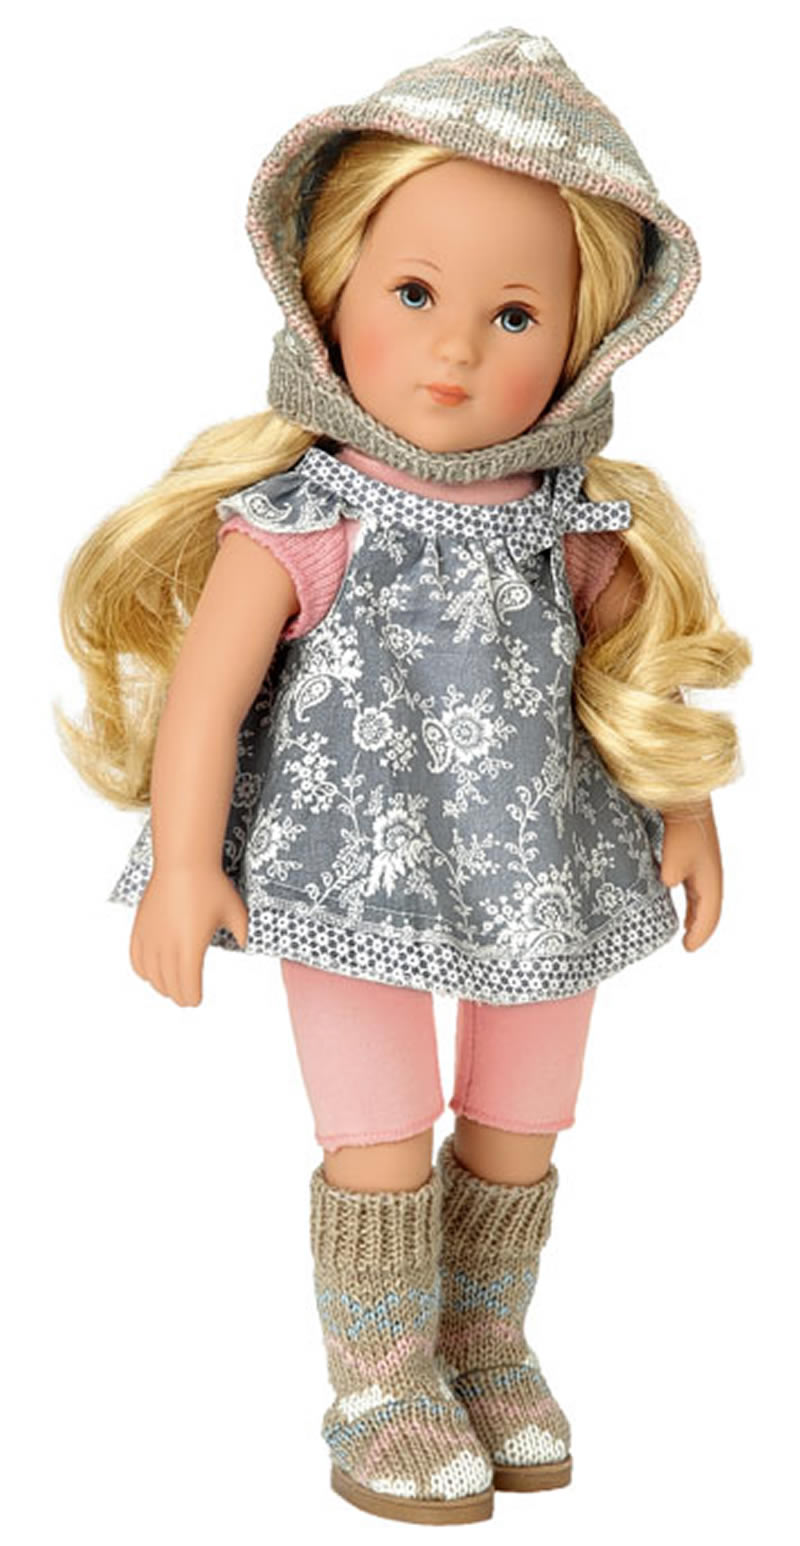 K 228 The Kruse Doll Sophie Helena 41255 Online At Papiton